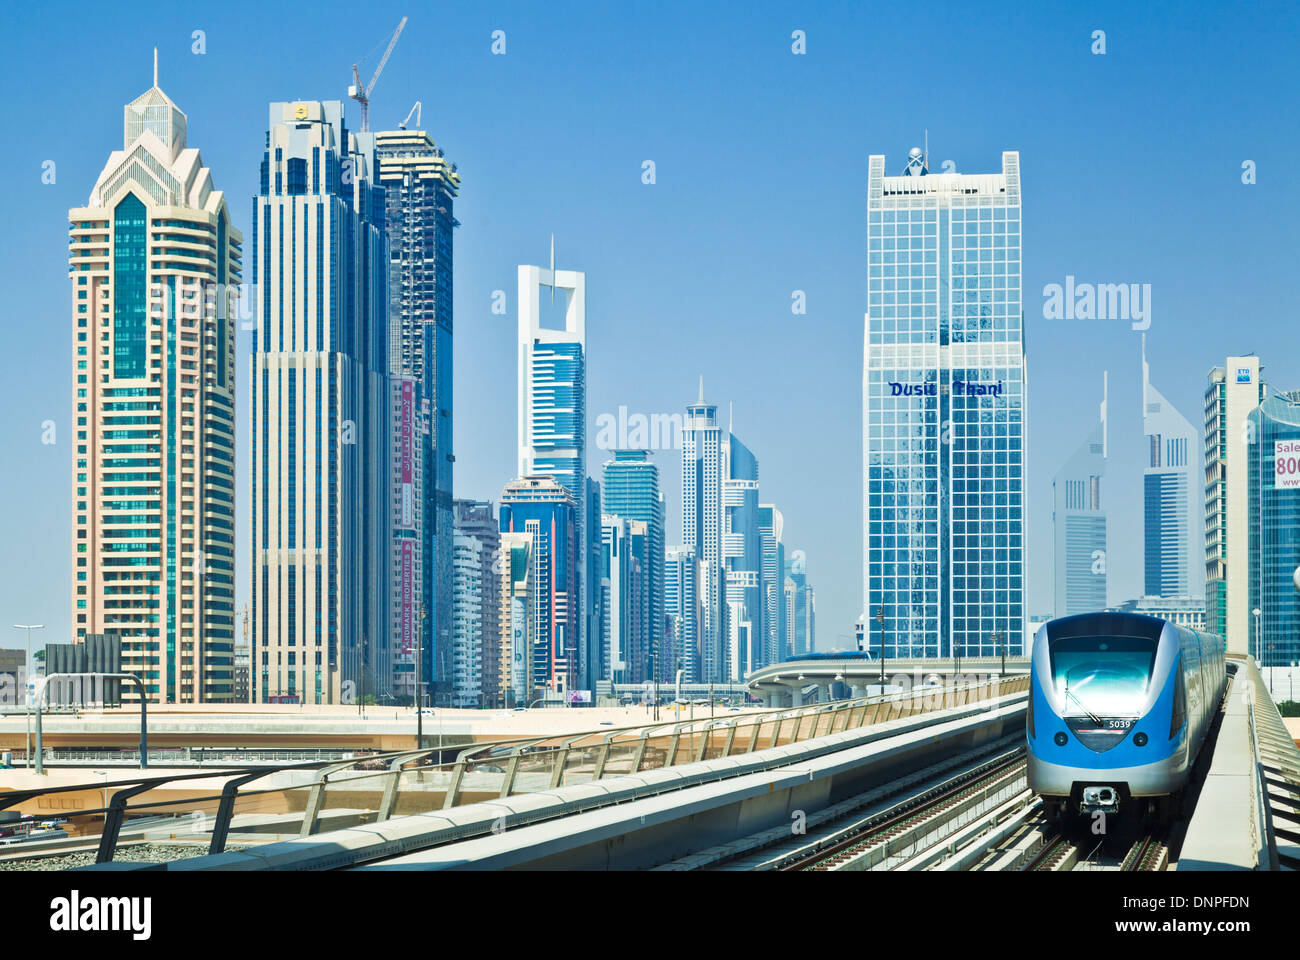 Sheikh Zayed Road skyline high rise skyscrapers, metro train, Dubai City, United Arab Emirates, UAE, Middle east - Stock Image